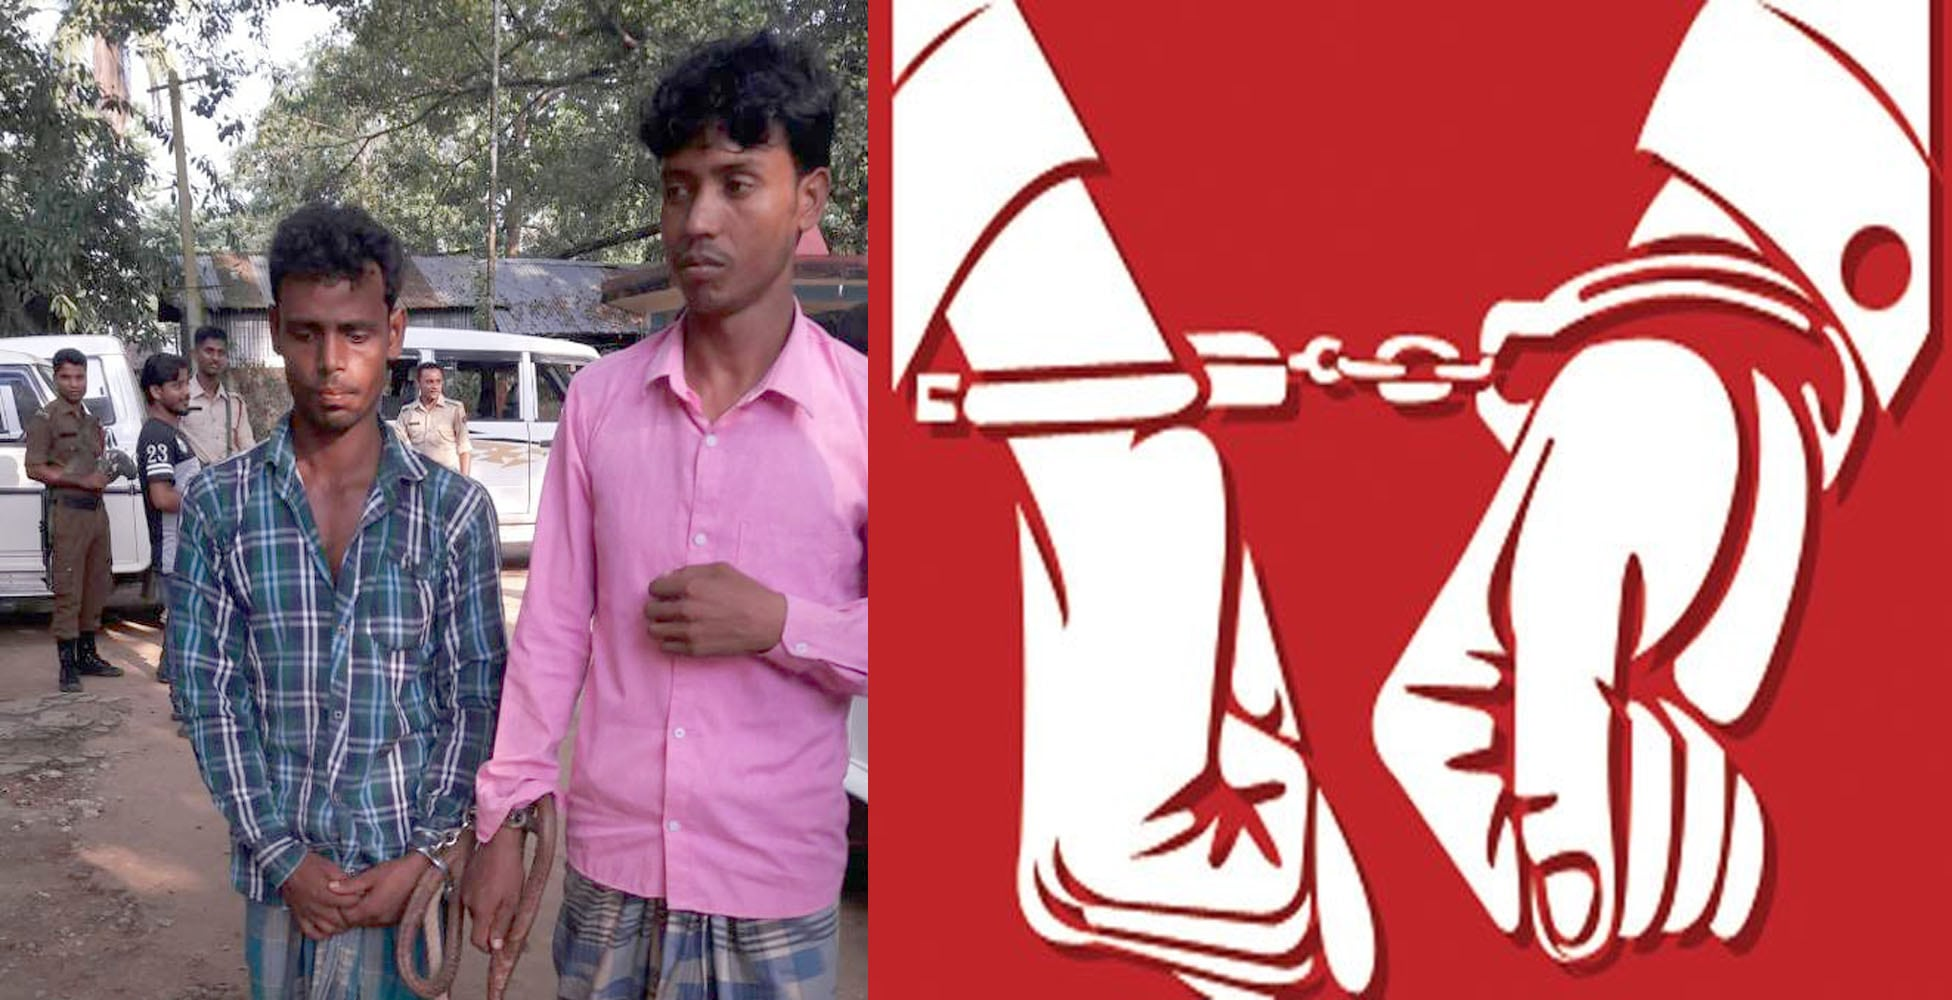 Miscreants held by Police on Robbery charges in Karimganj, Arms Recovered